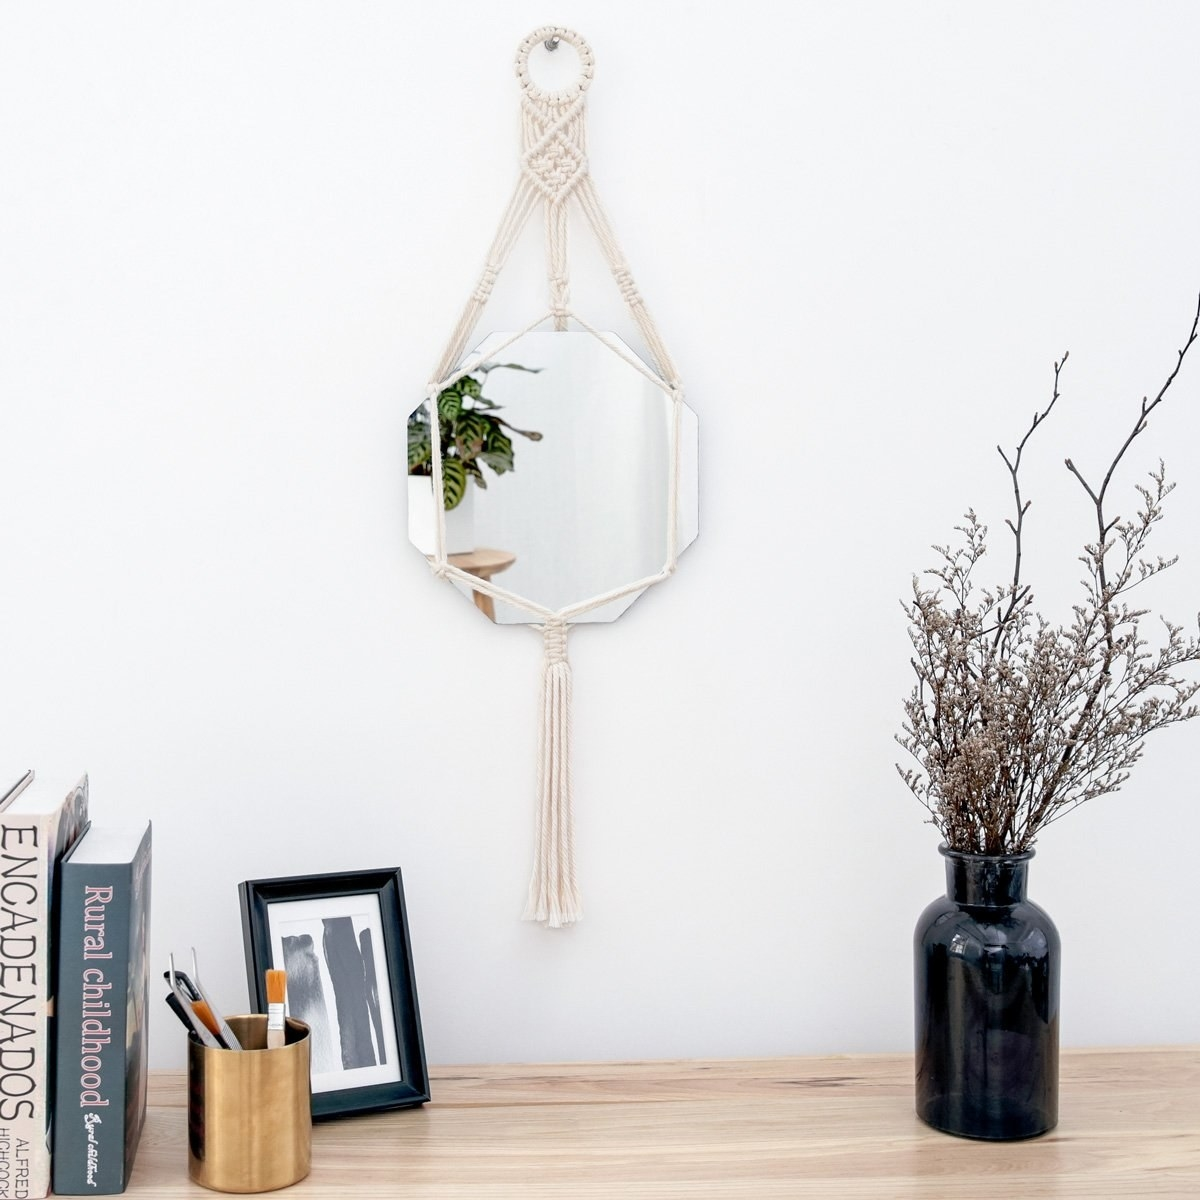 Macrame mirror on wall